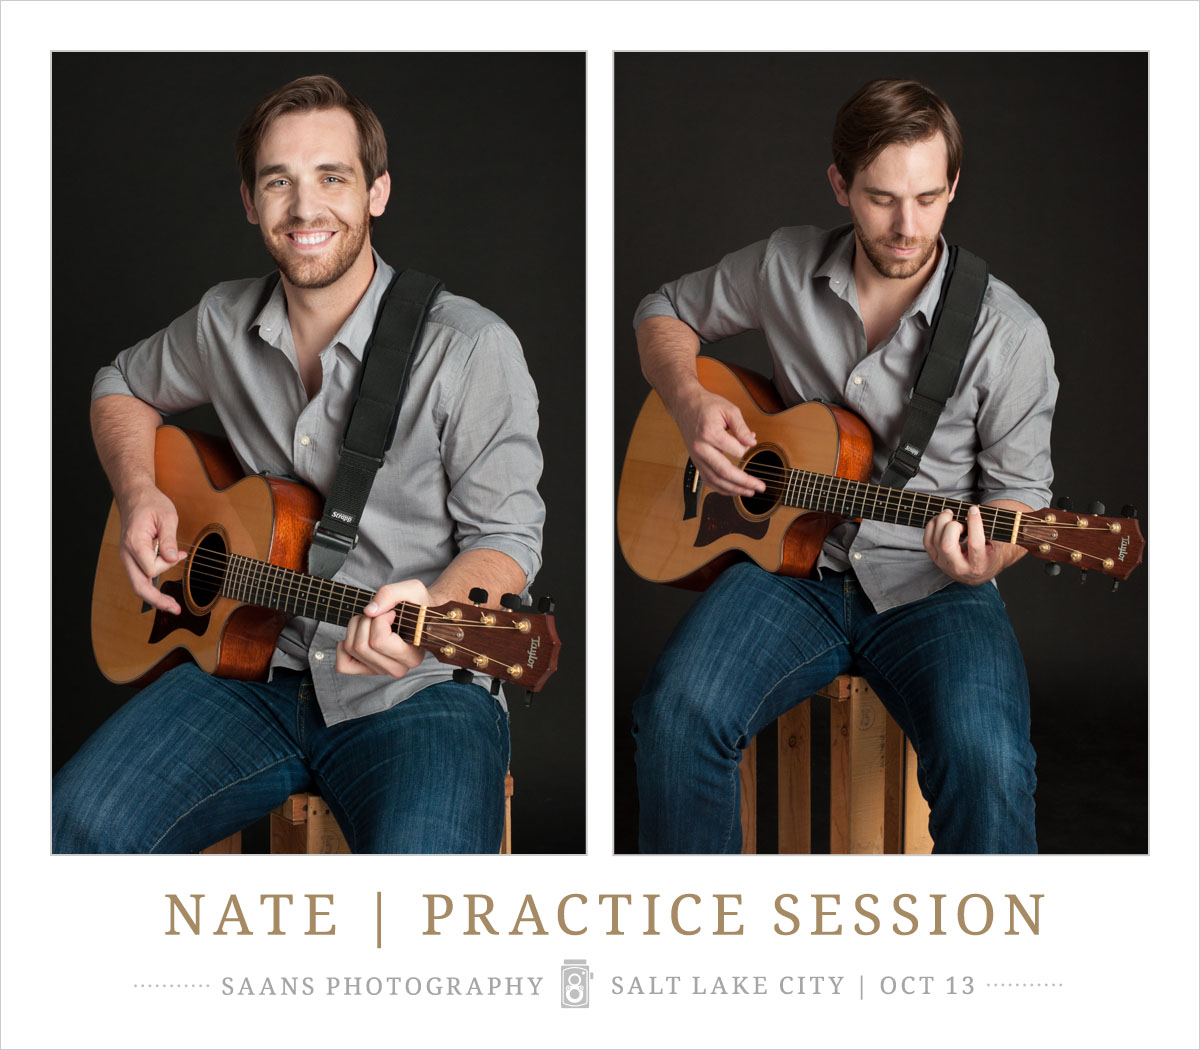 Nate Practice Session